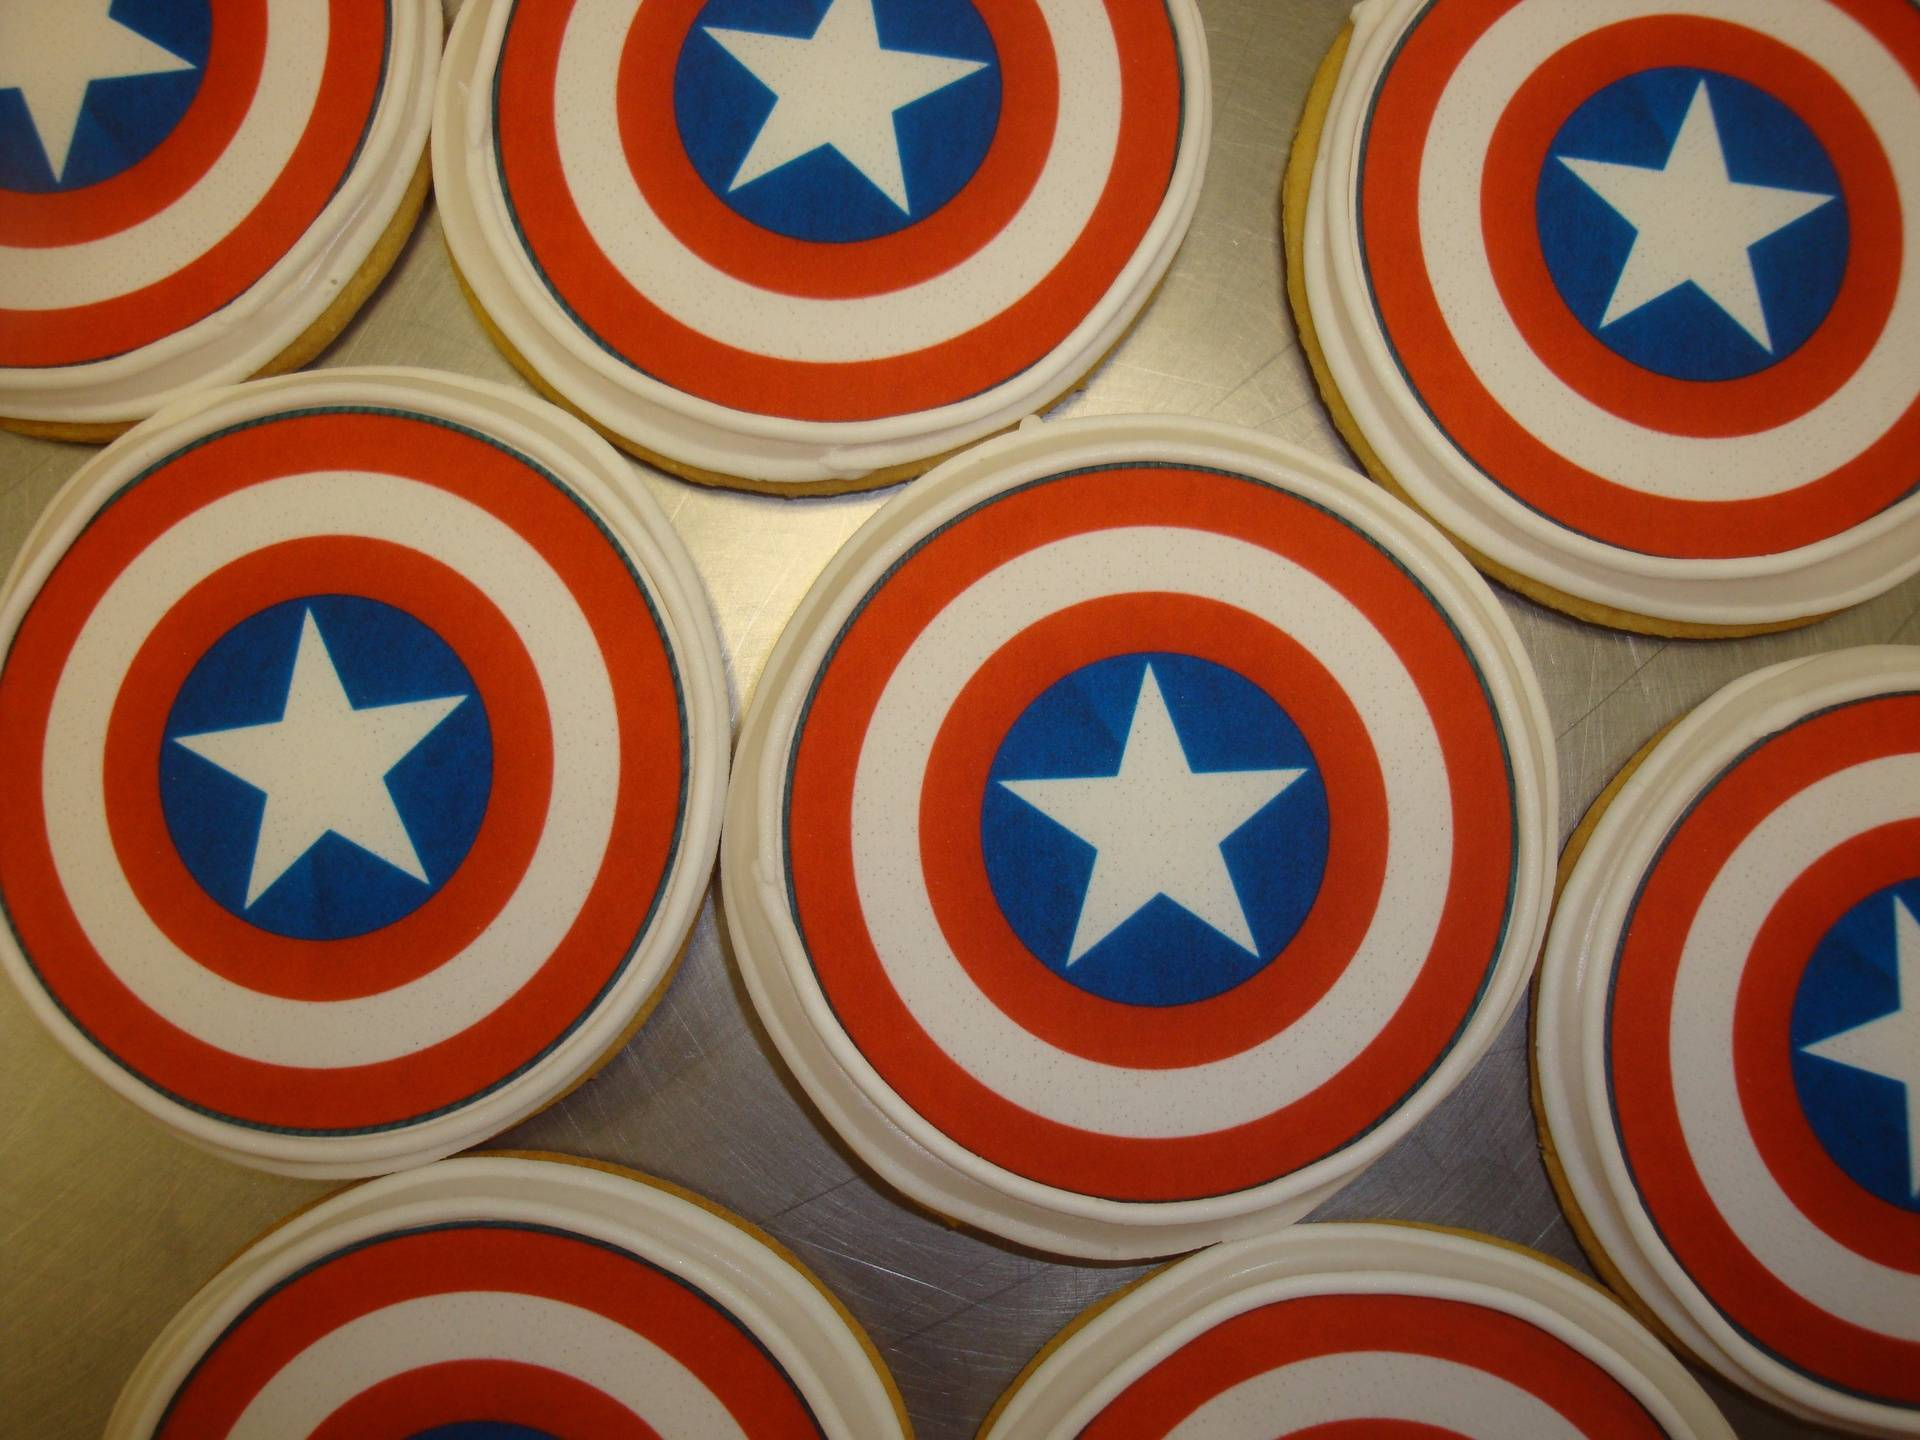 Captian America photo decal cookies $3.50 each